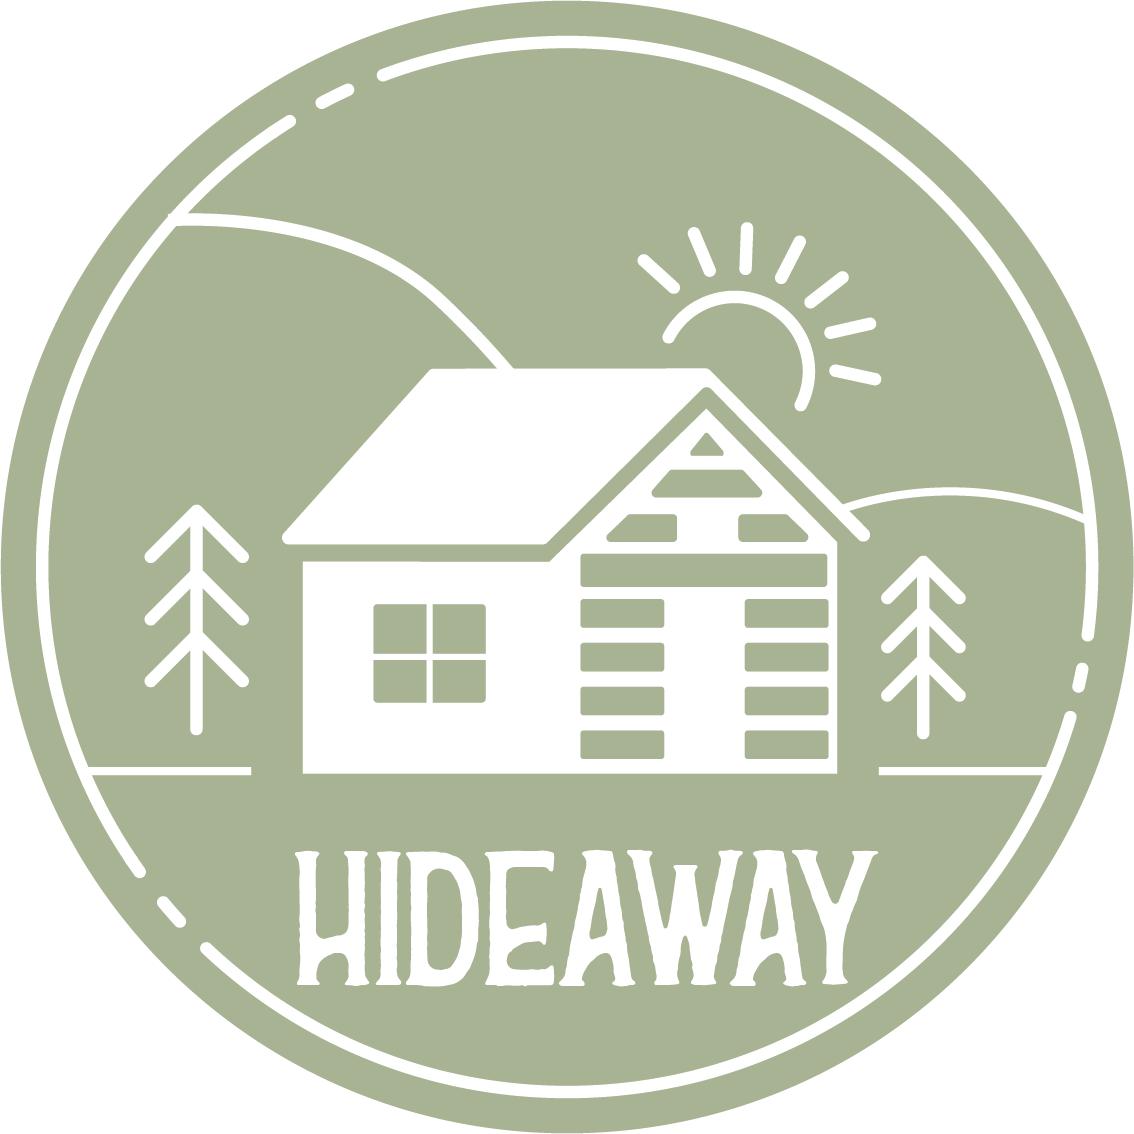 hideaway icon